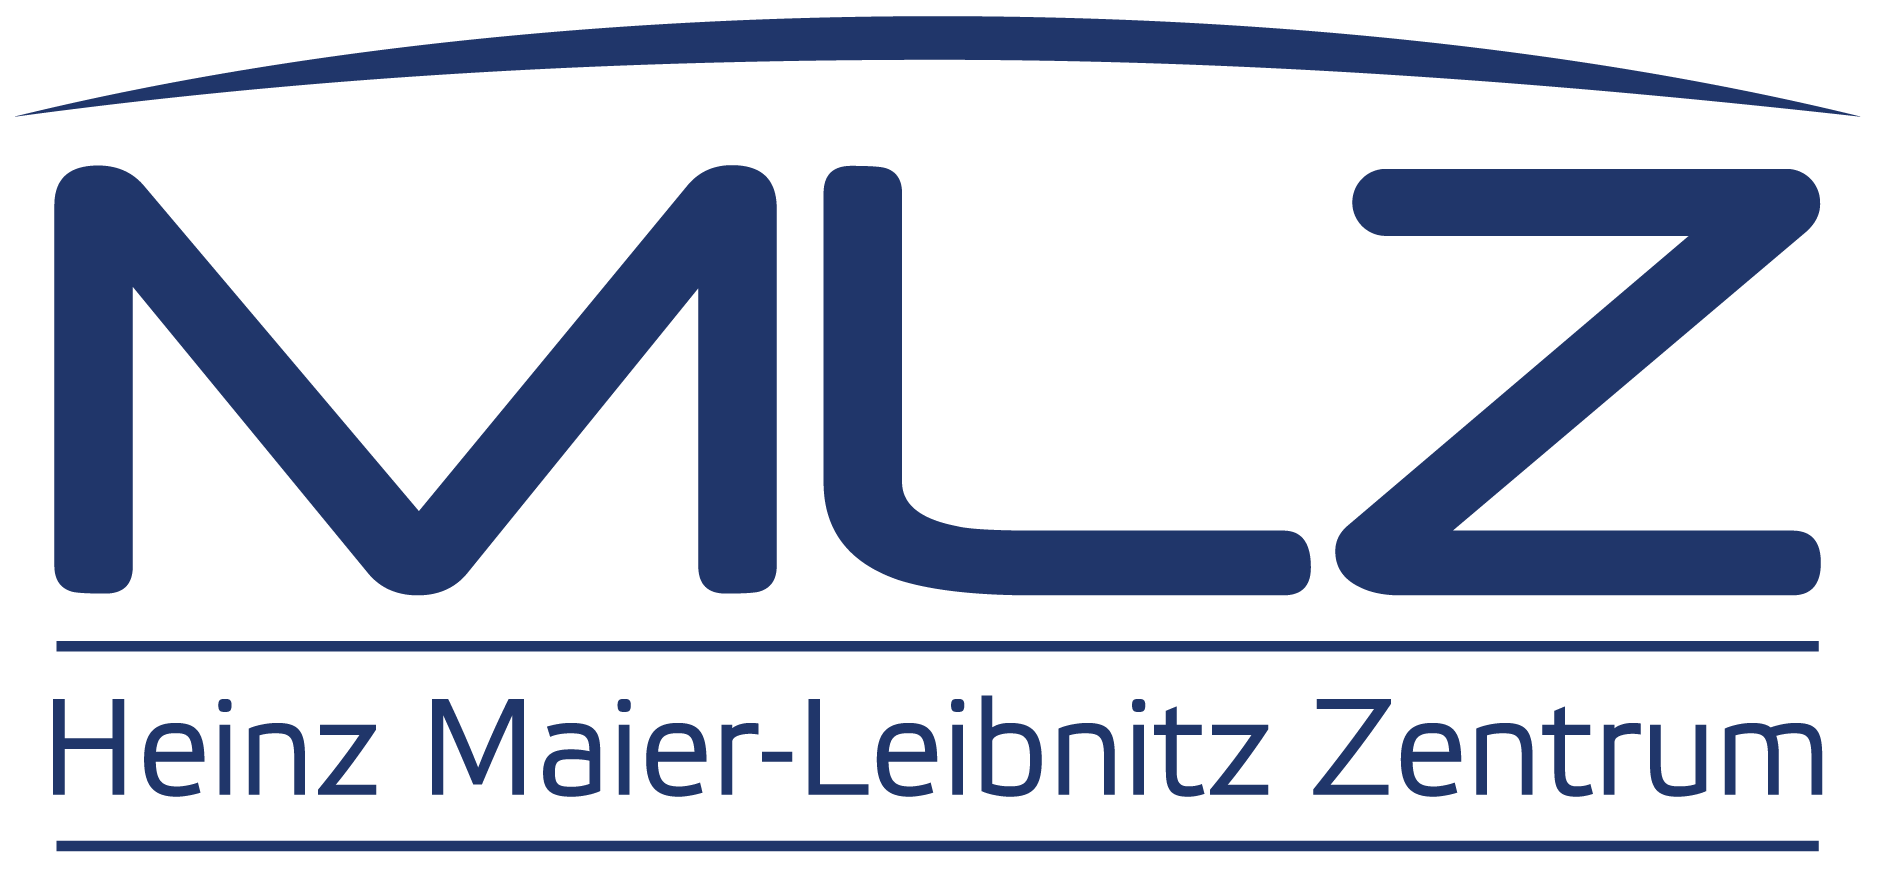 logo-mlz-blue-transparent.png